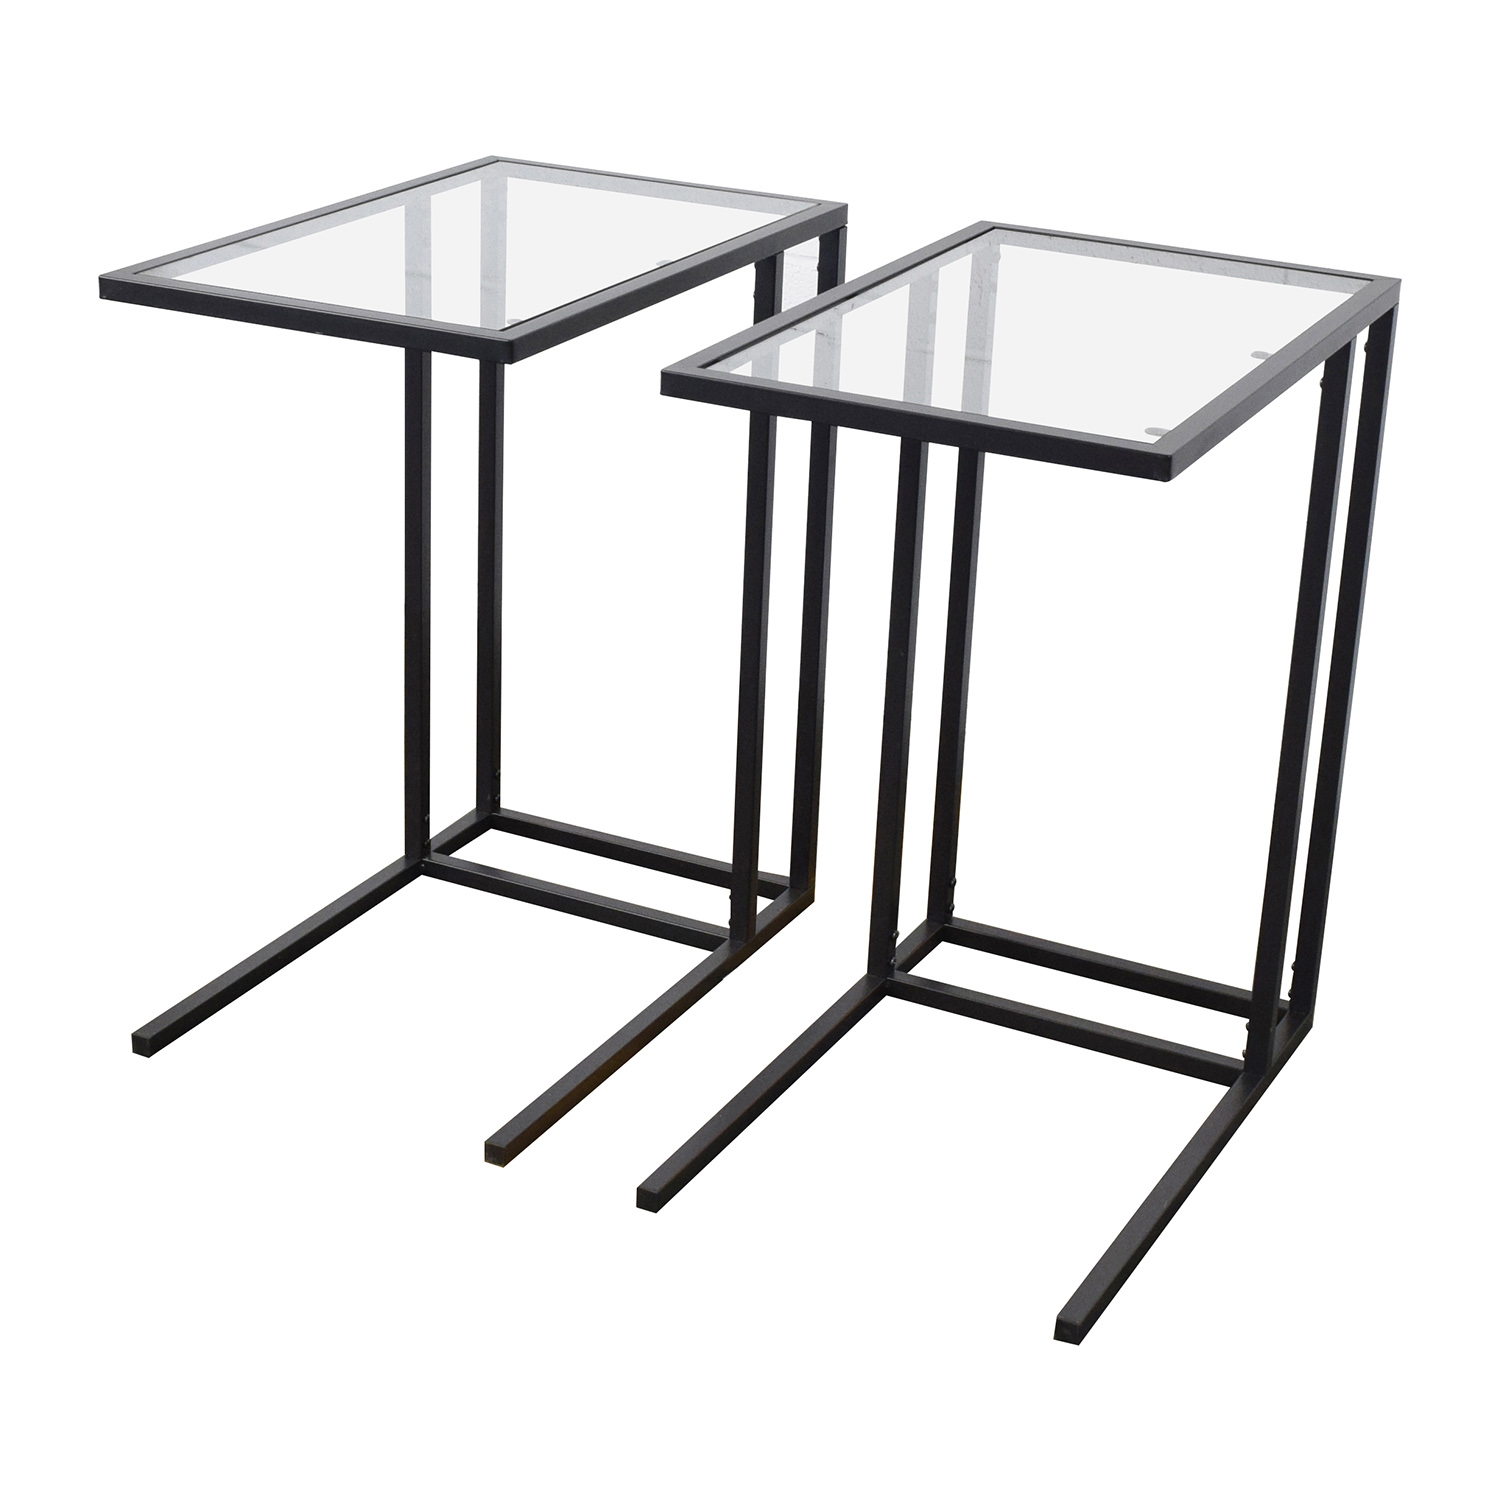 67 off ikea ikea glass end tables tables for Ikea glass table tops